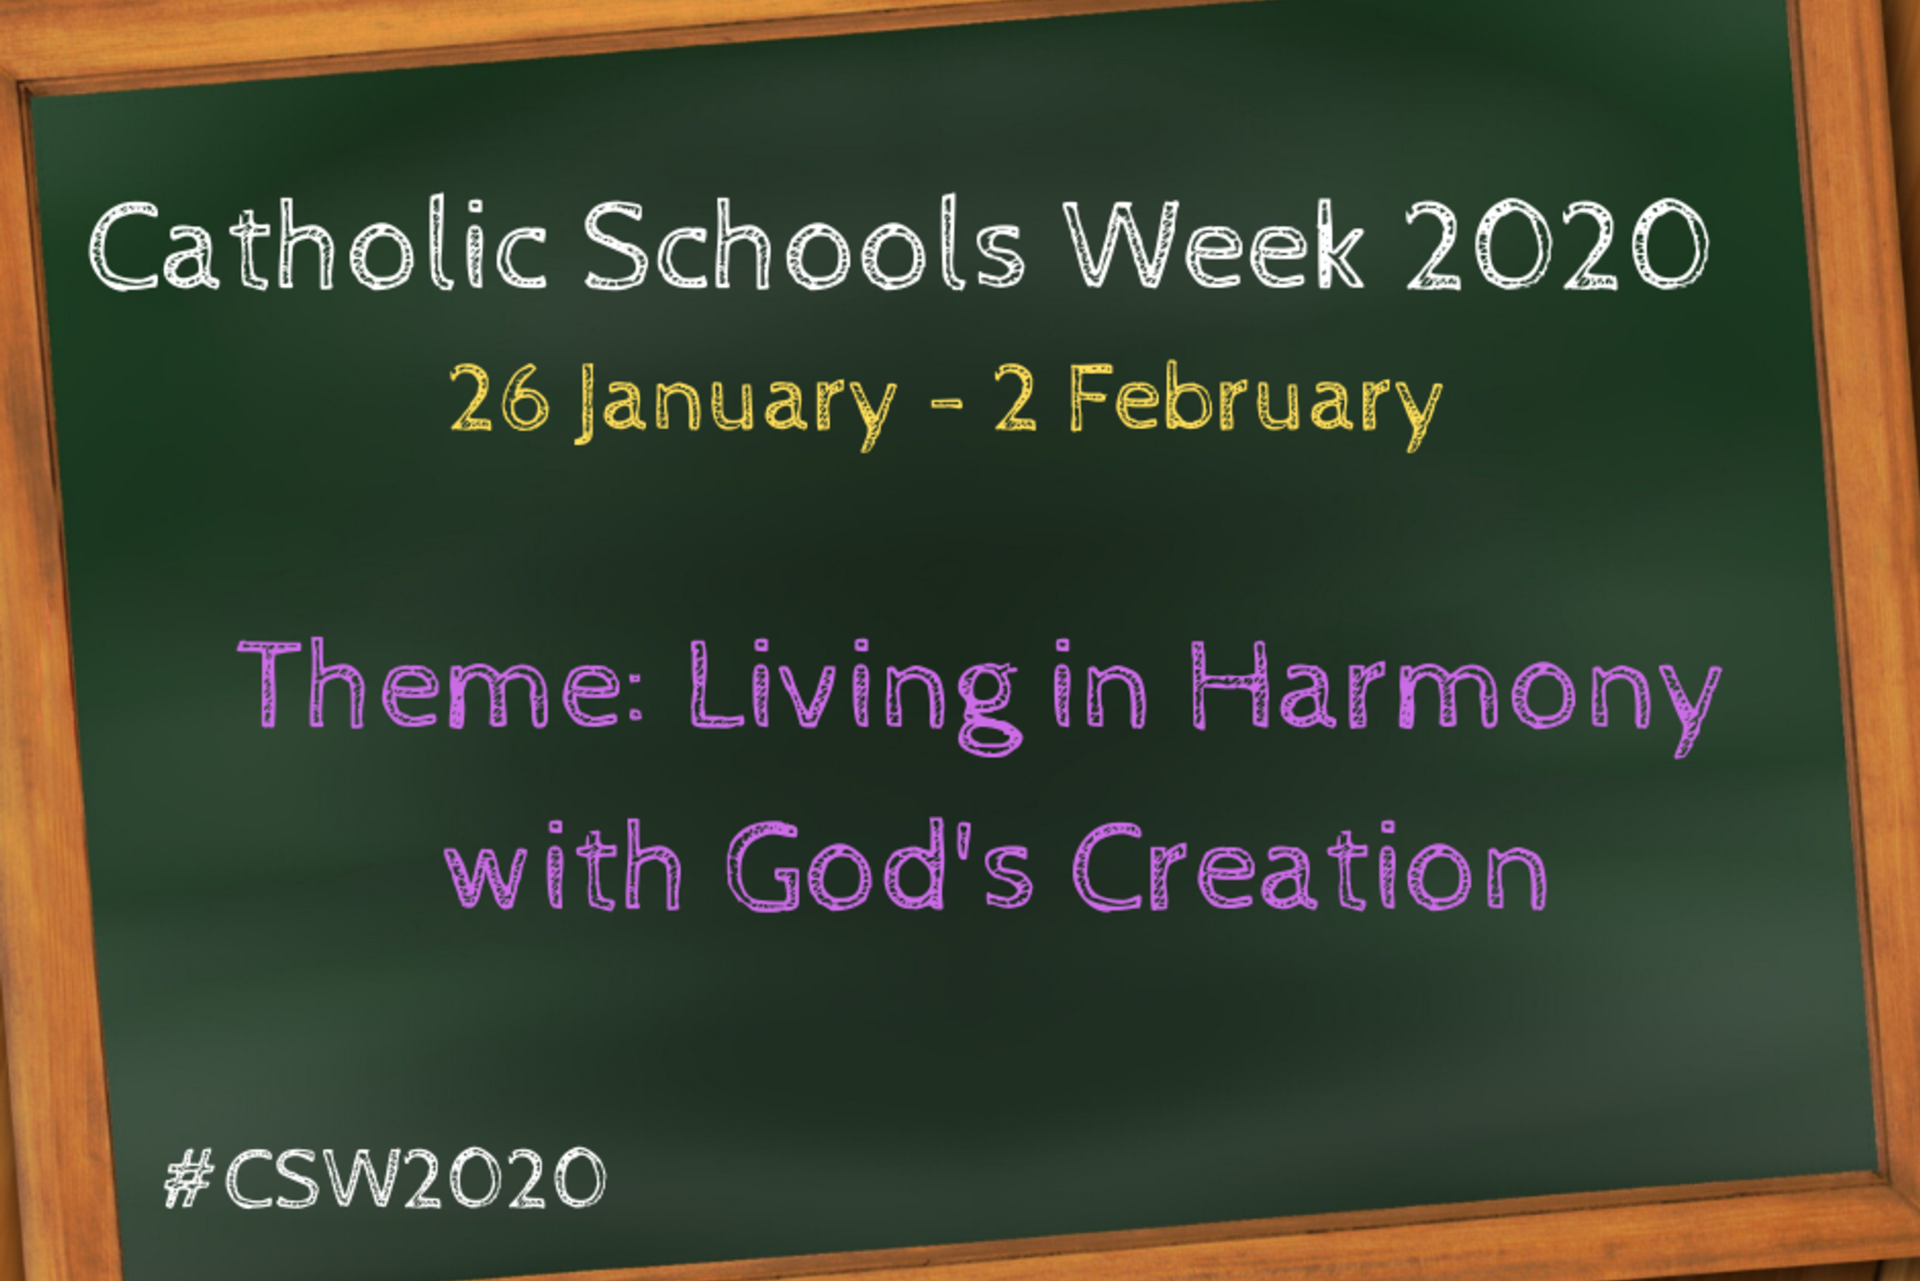 New audio and Resources for Friday of Catholic Schools Week 2020